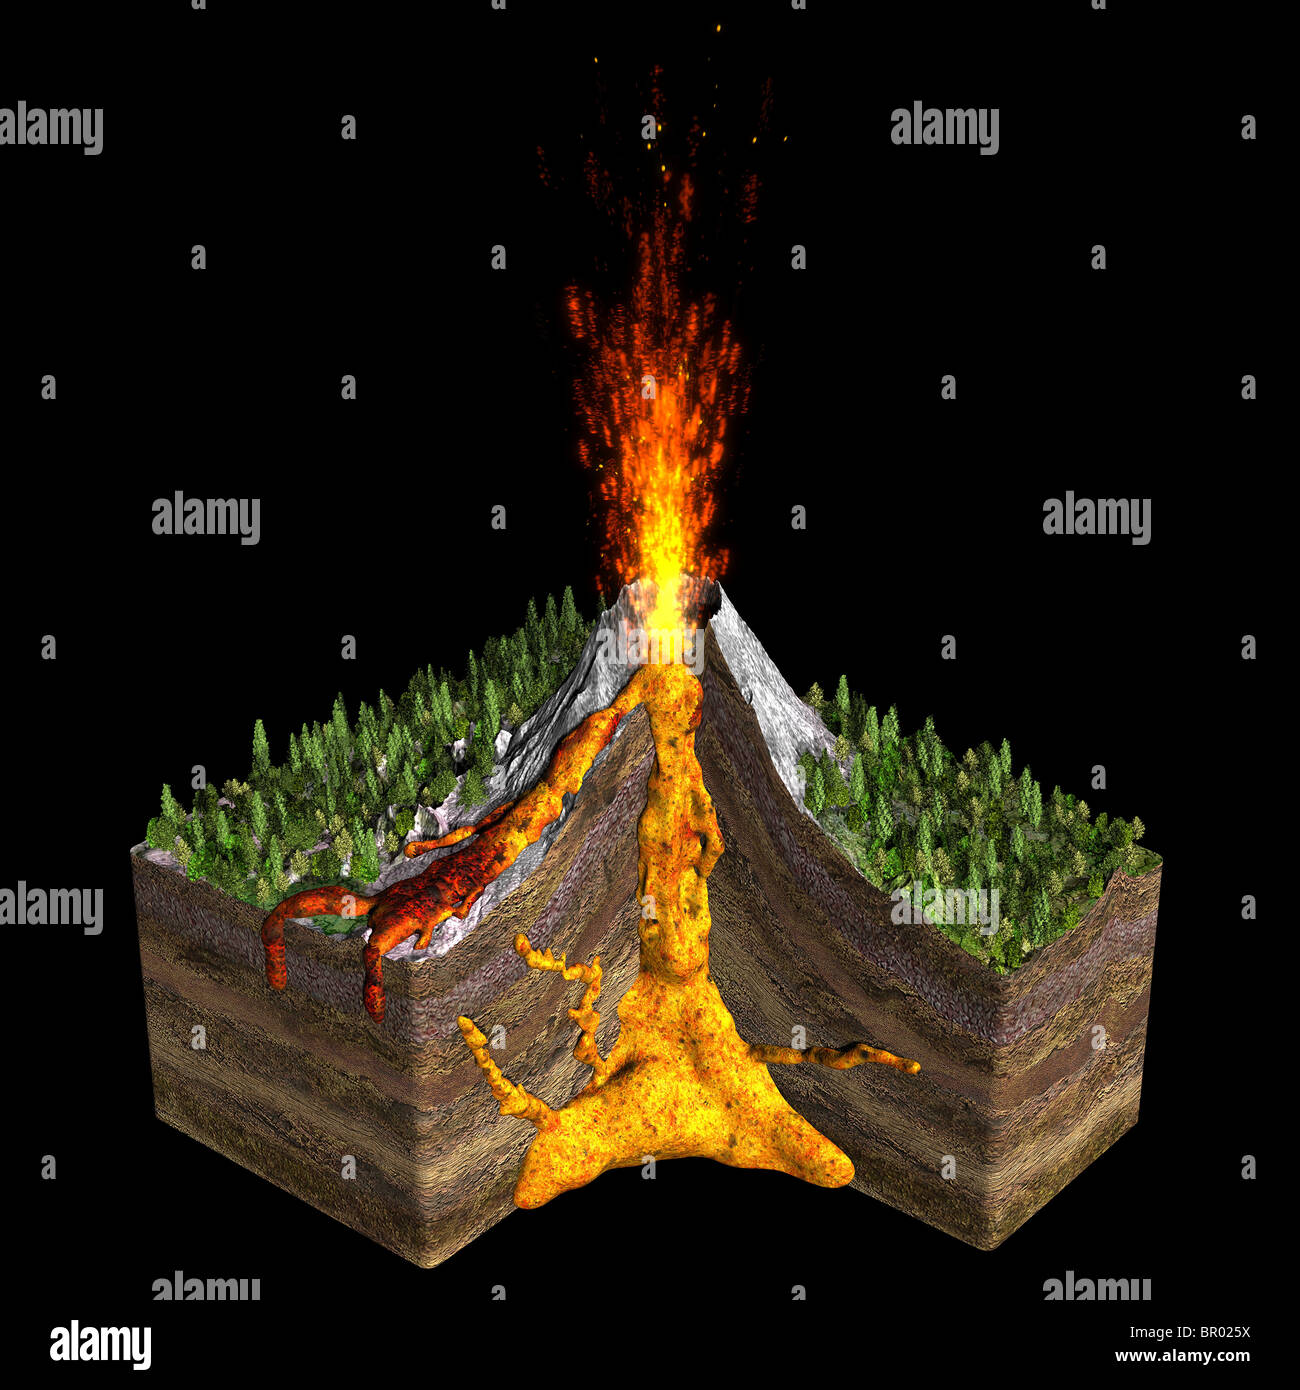 Illustration Of A Volcano Spitting Fire Showing A Cross